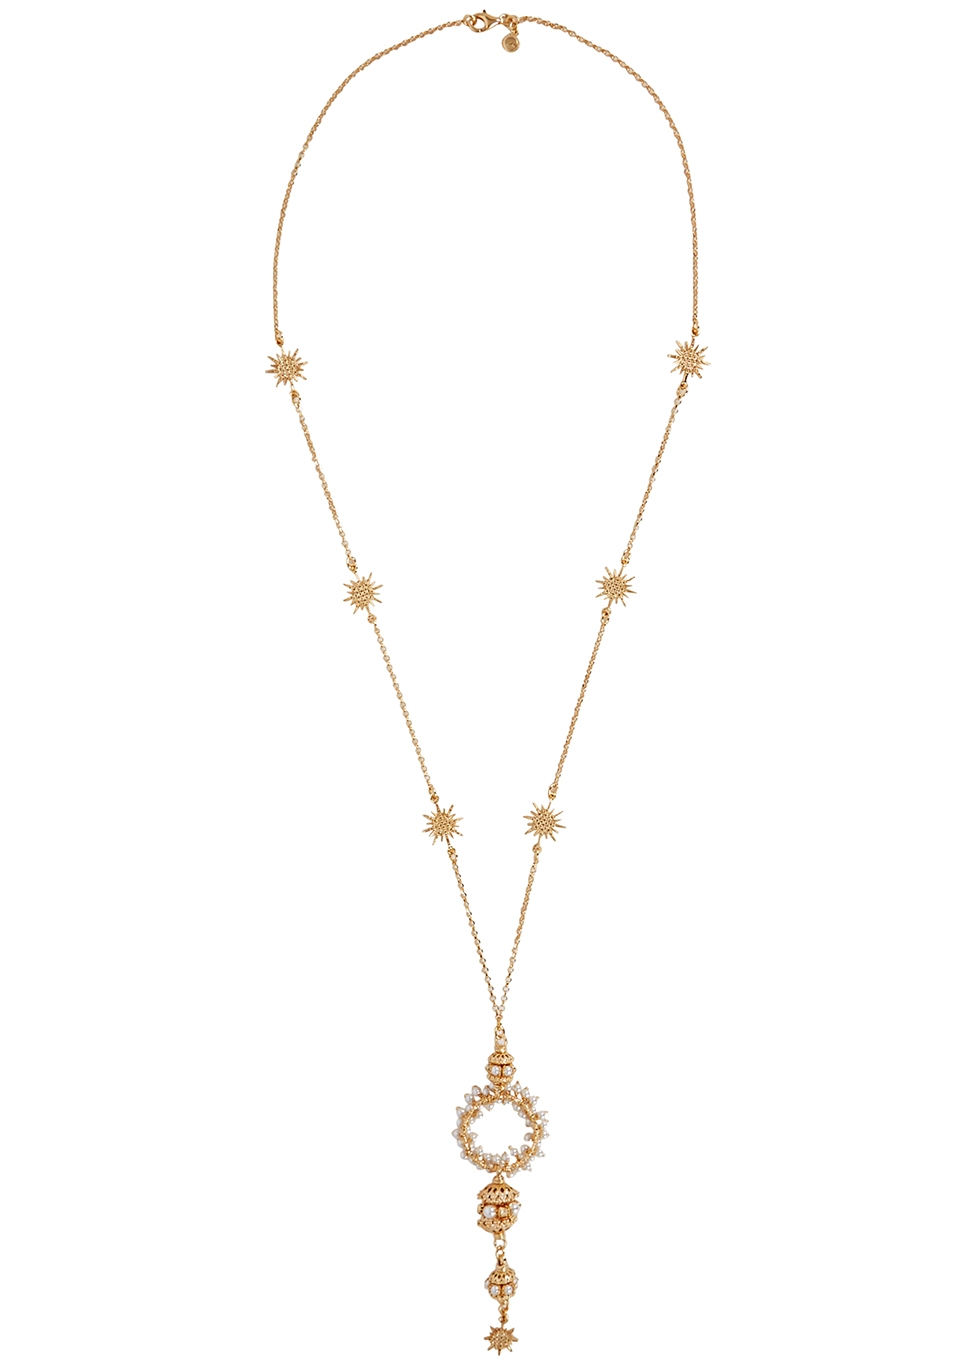 SORU JEWELLERY Elena 24Ct Gold-Plated Vermeil Necklace in Pearl